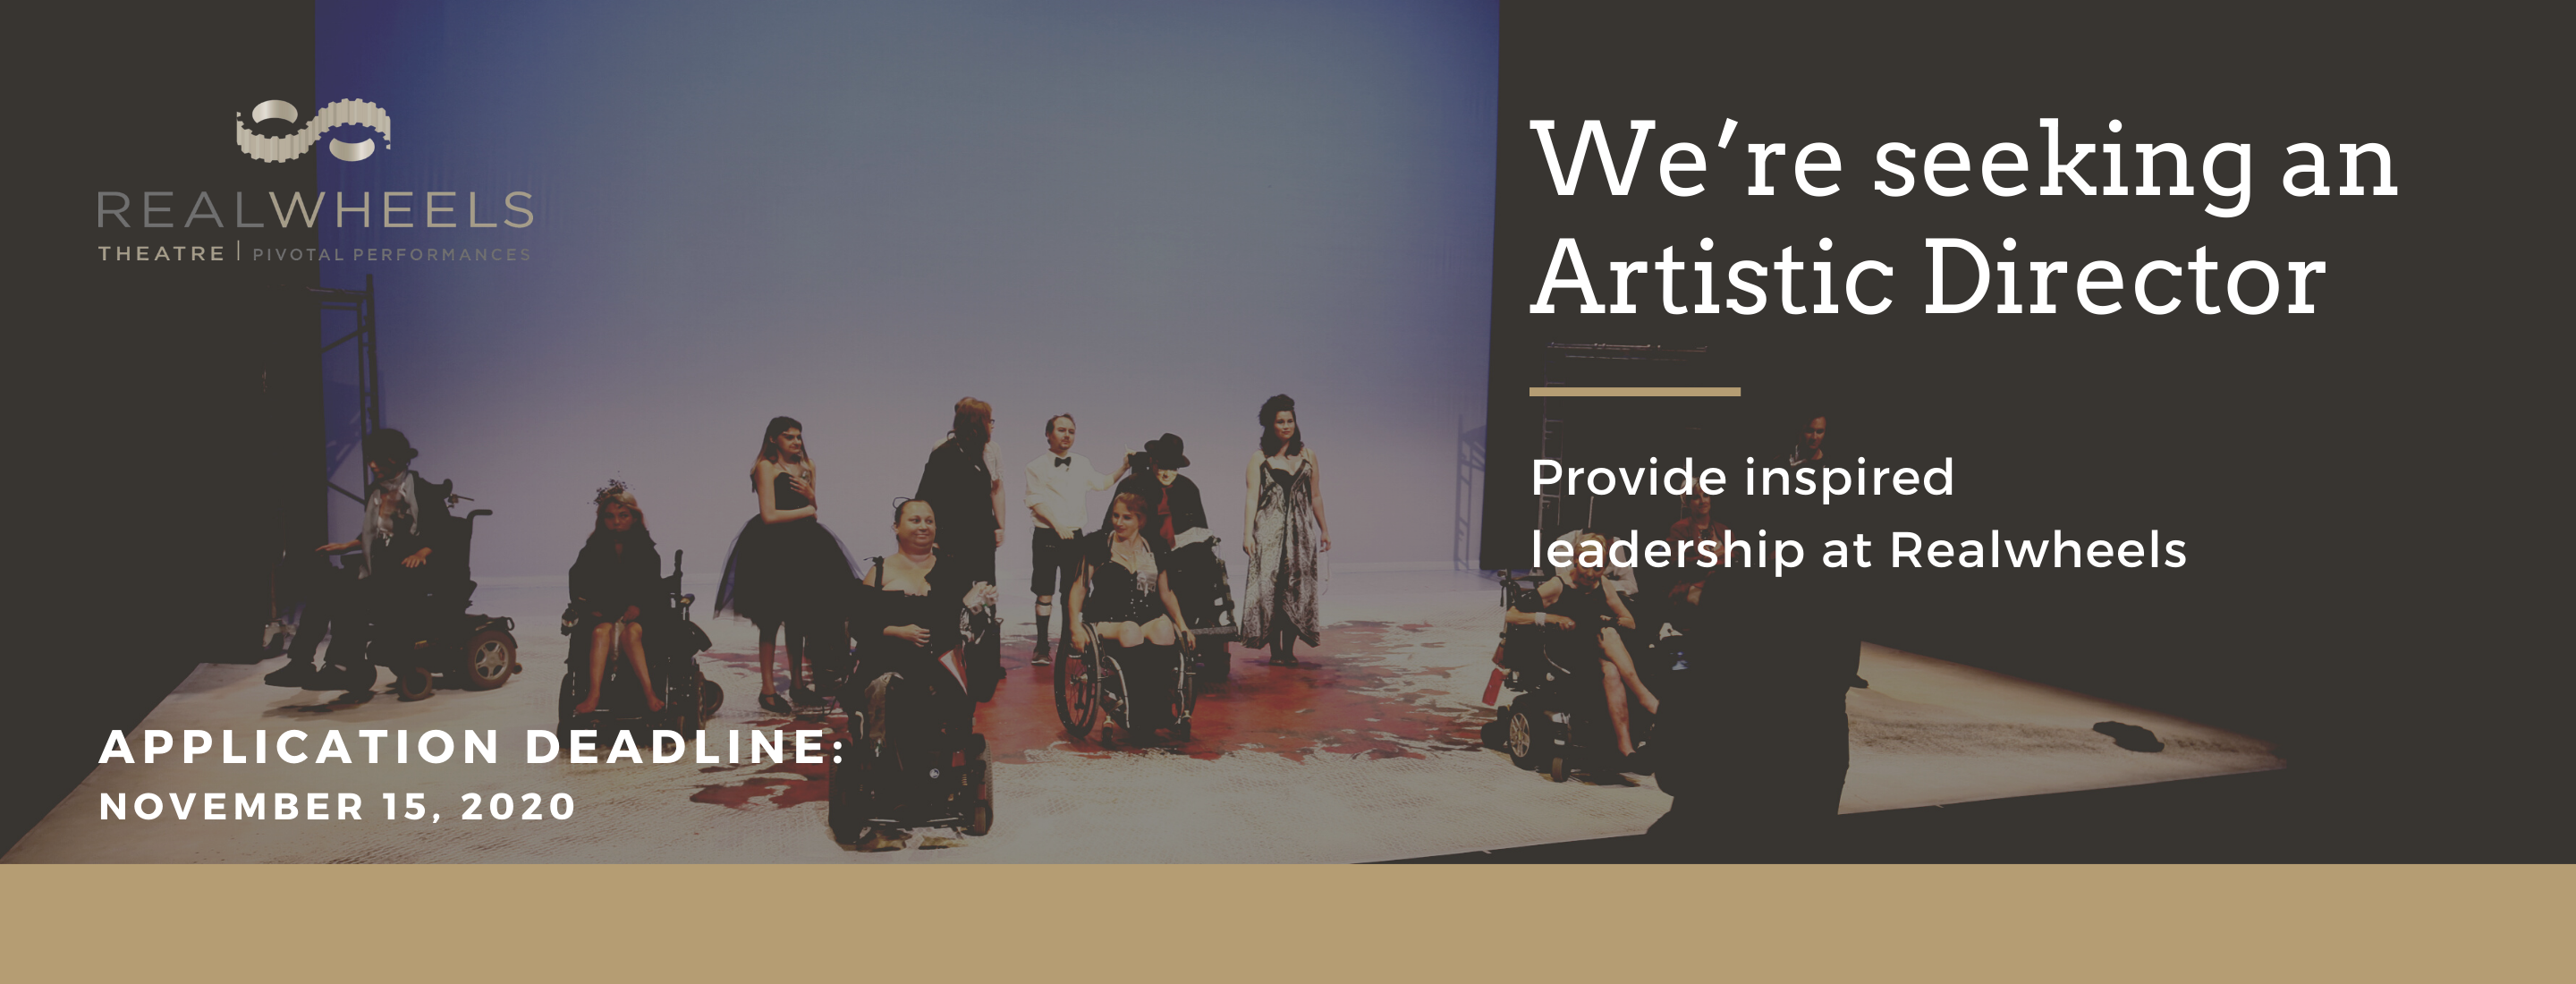 """A photo of a group of performers on stage, some using mobility devices. Text overlaid reads: """"We're seeking an Artistic Director. Provide inspired leadership at Realwheels. Application deadline: November 15, 2020."""""""